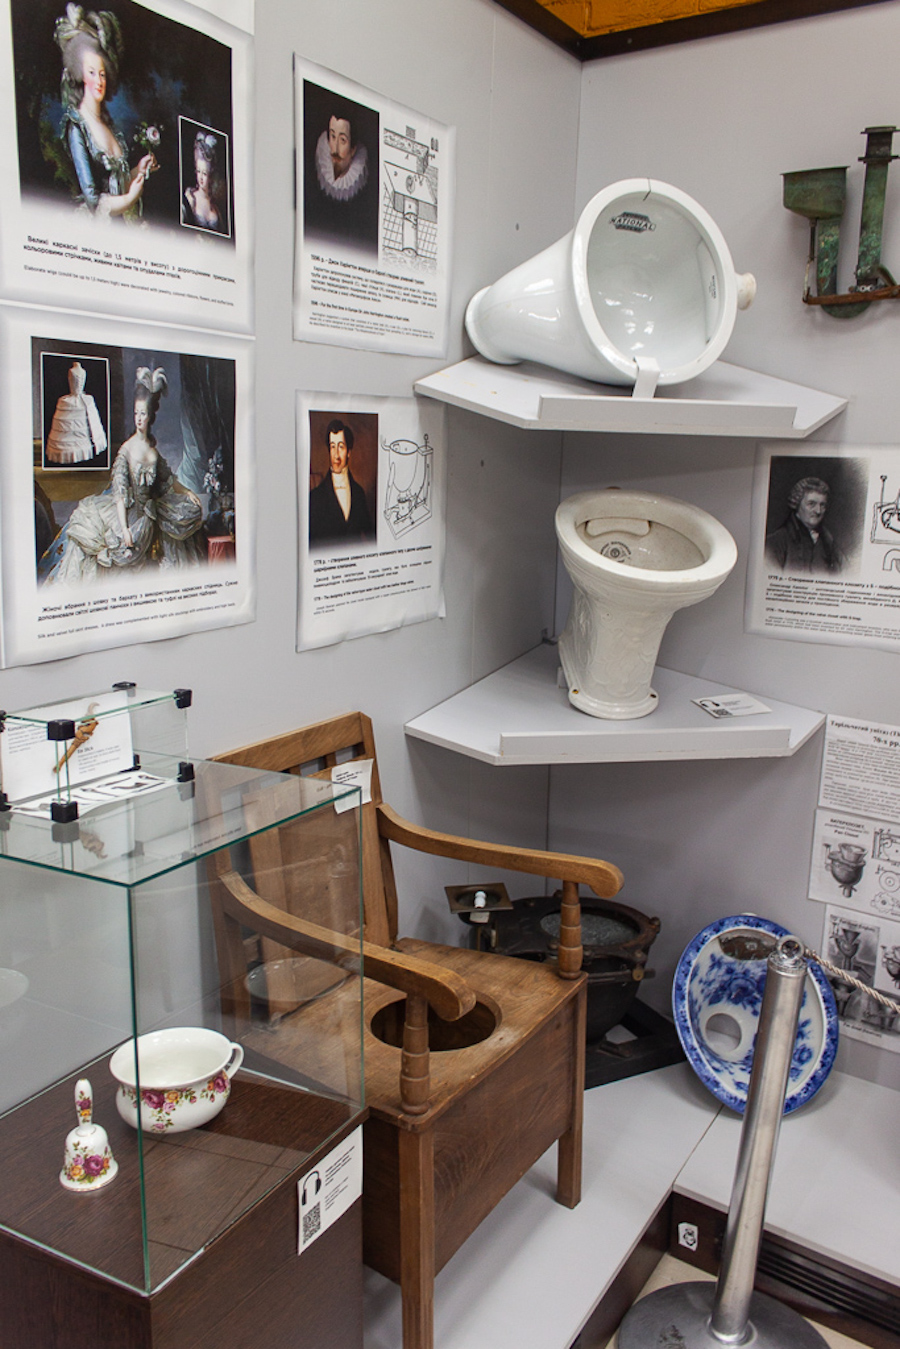 Museum Of Toilet History - Toilets In The Middle Ages